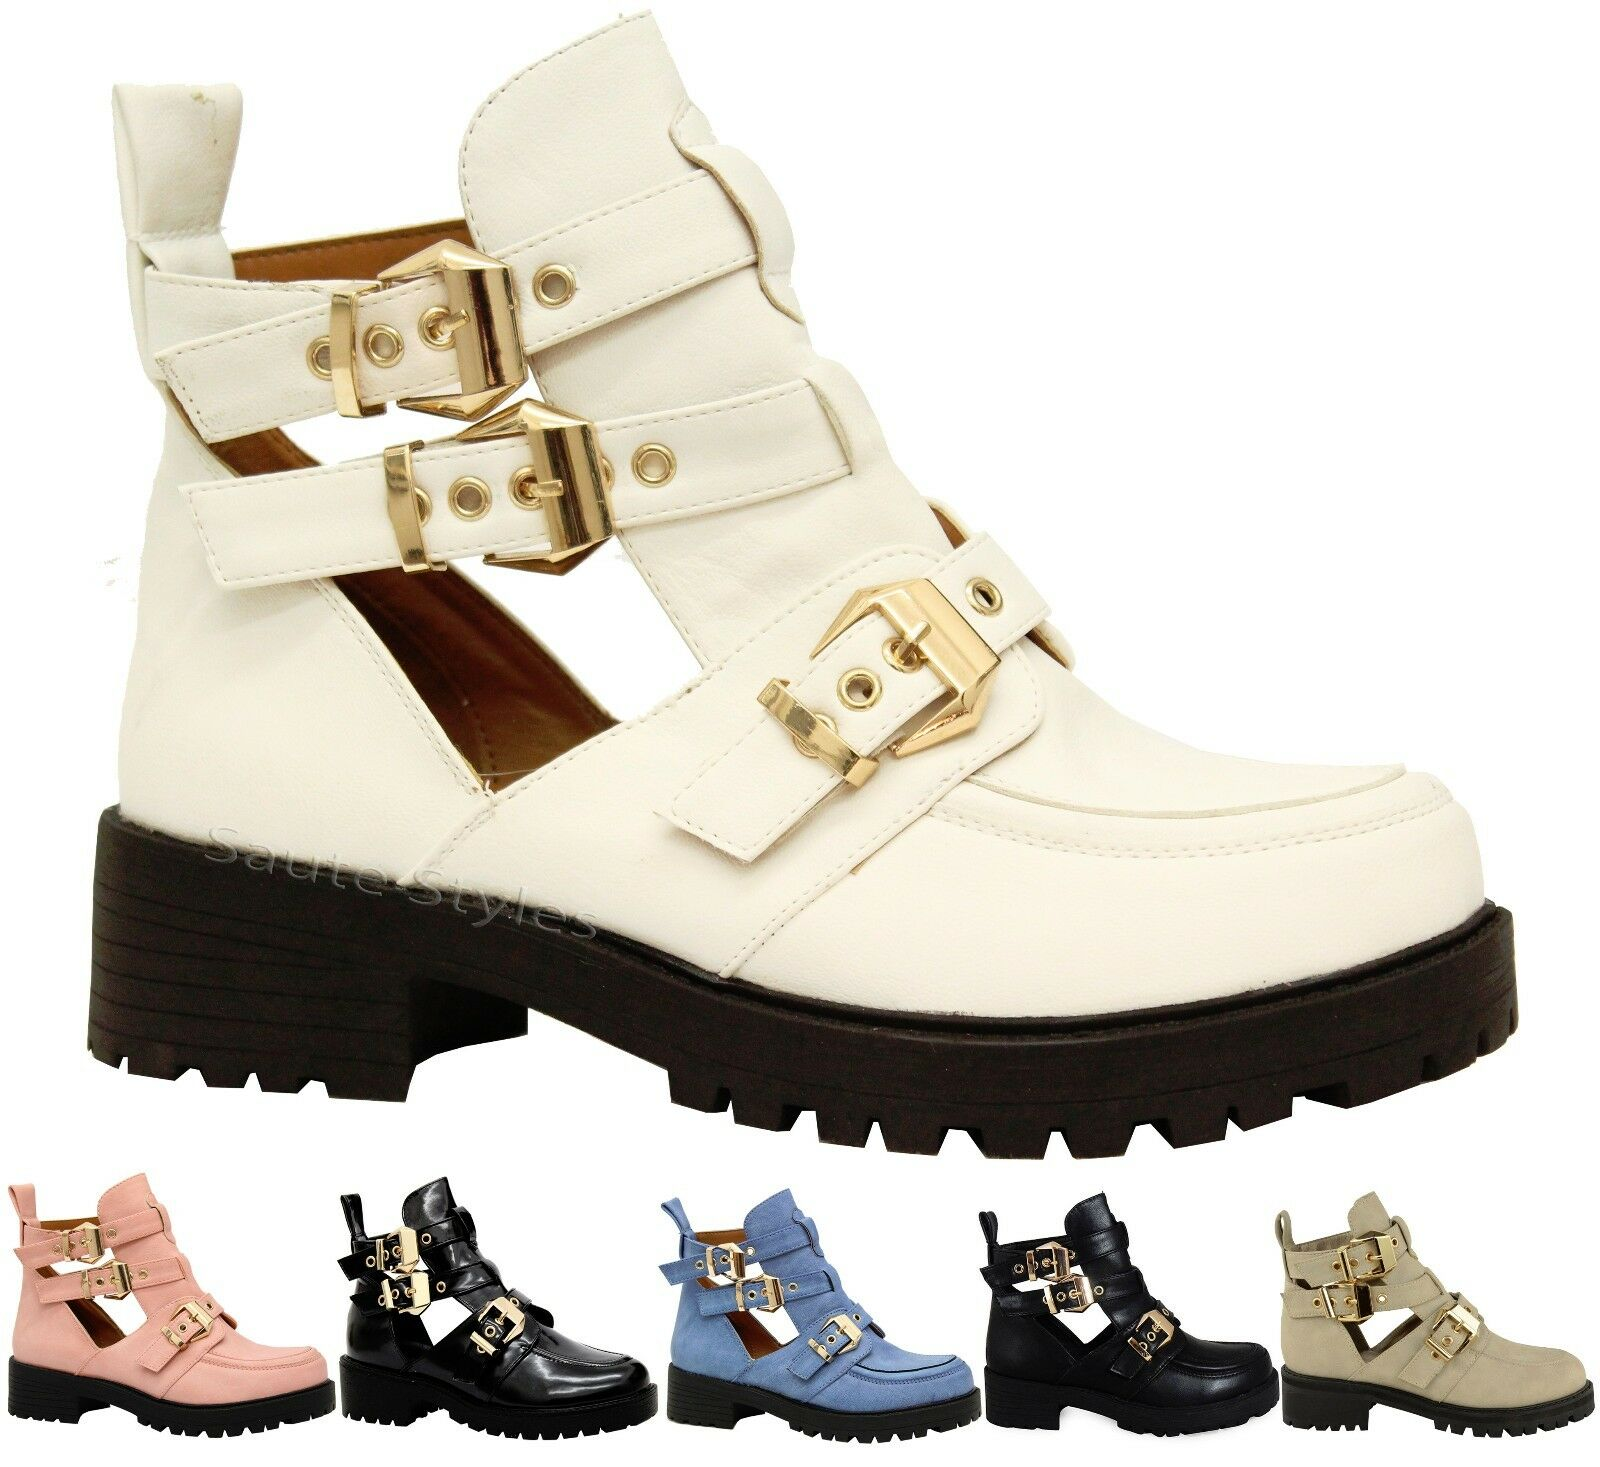 Ladies Mujer Buckles Chunky Cutout Chelsea botas Ankle School Office botas Chelsea Zapatos Talla 0541db